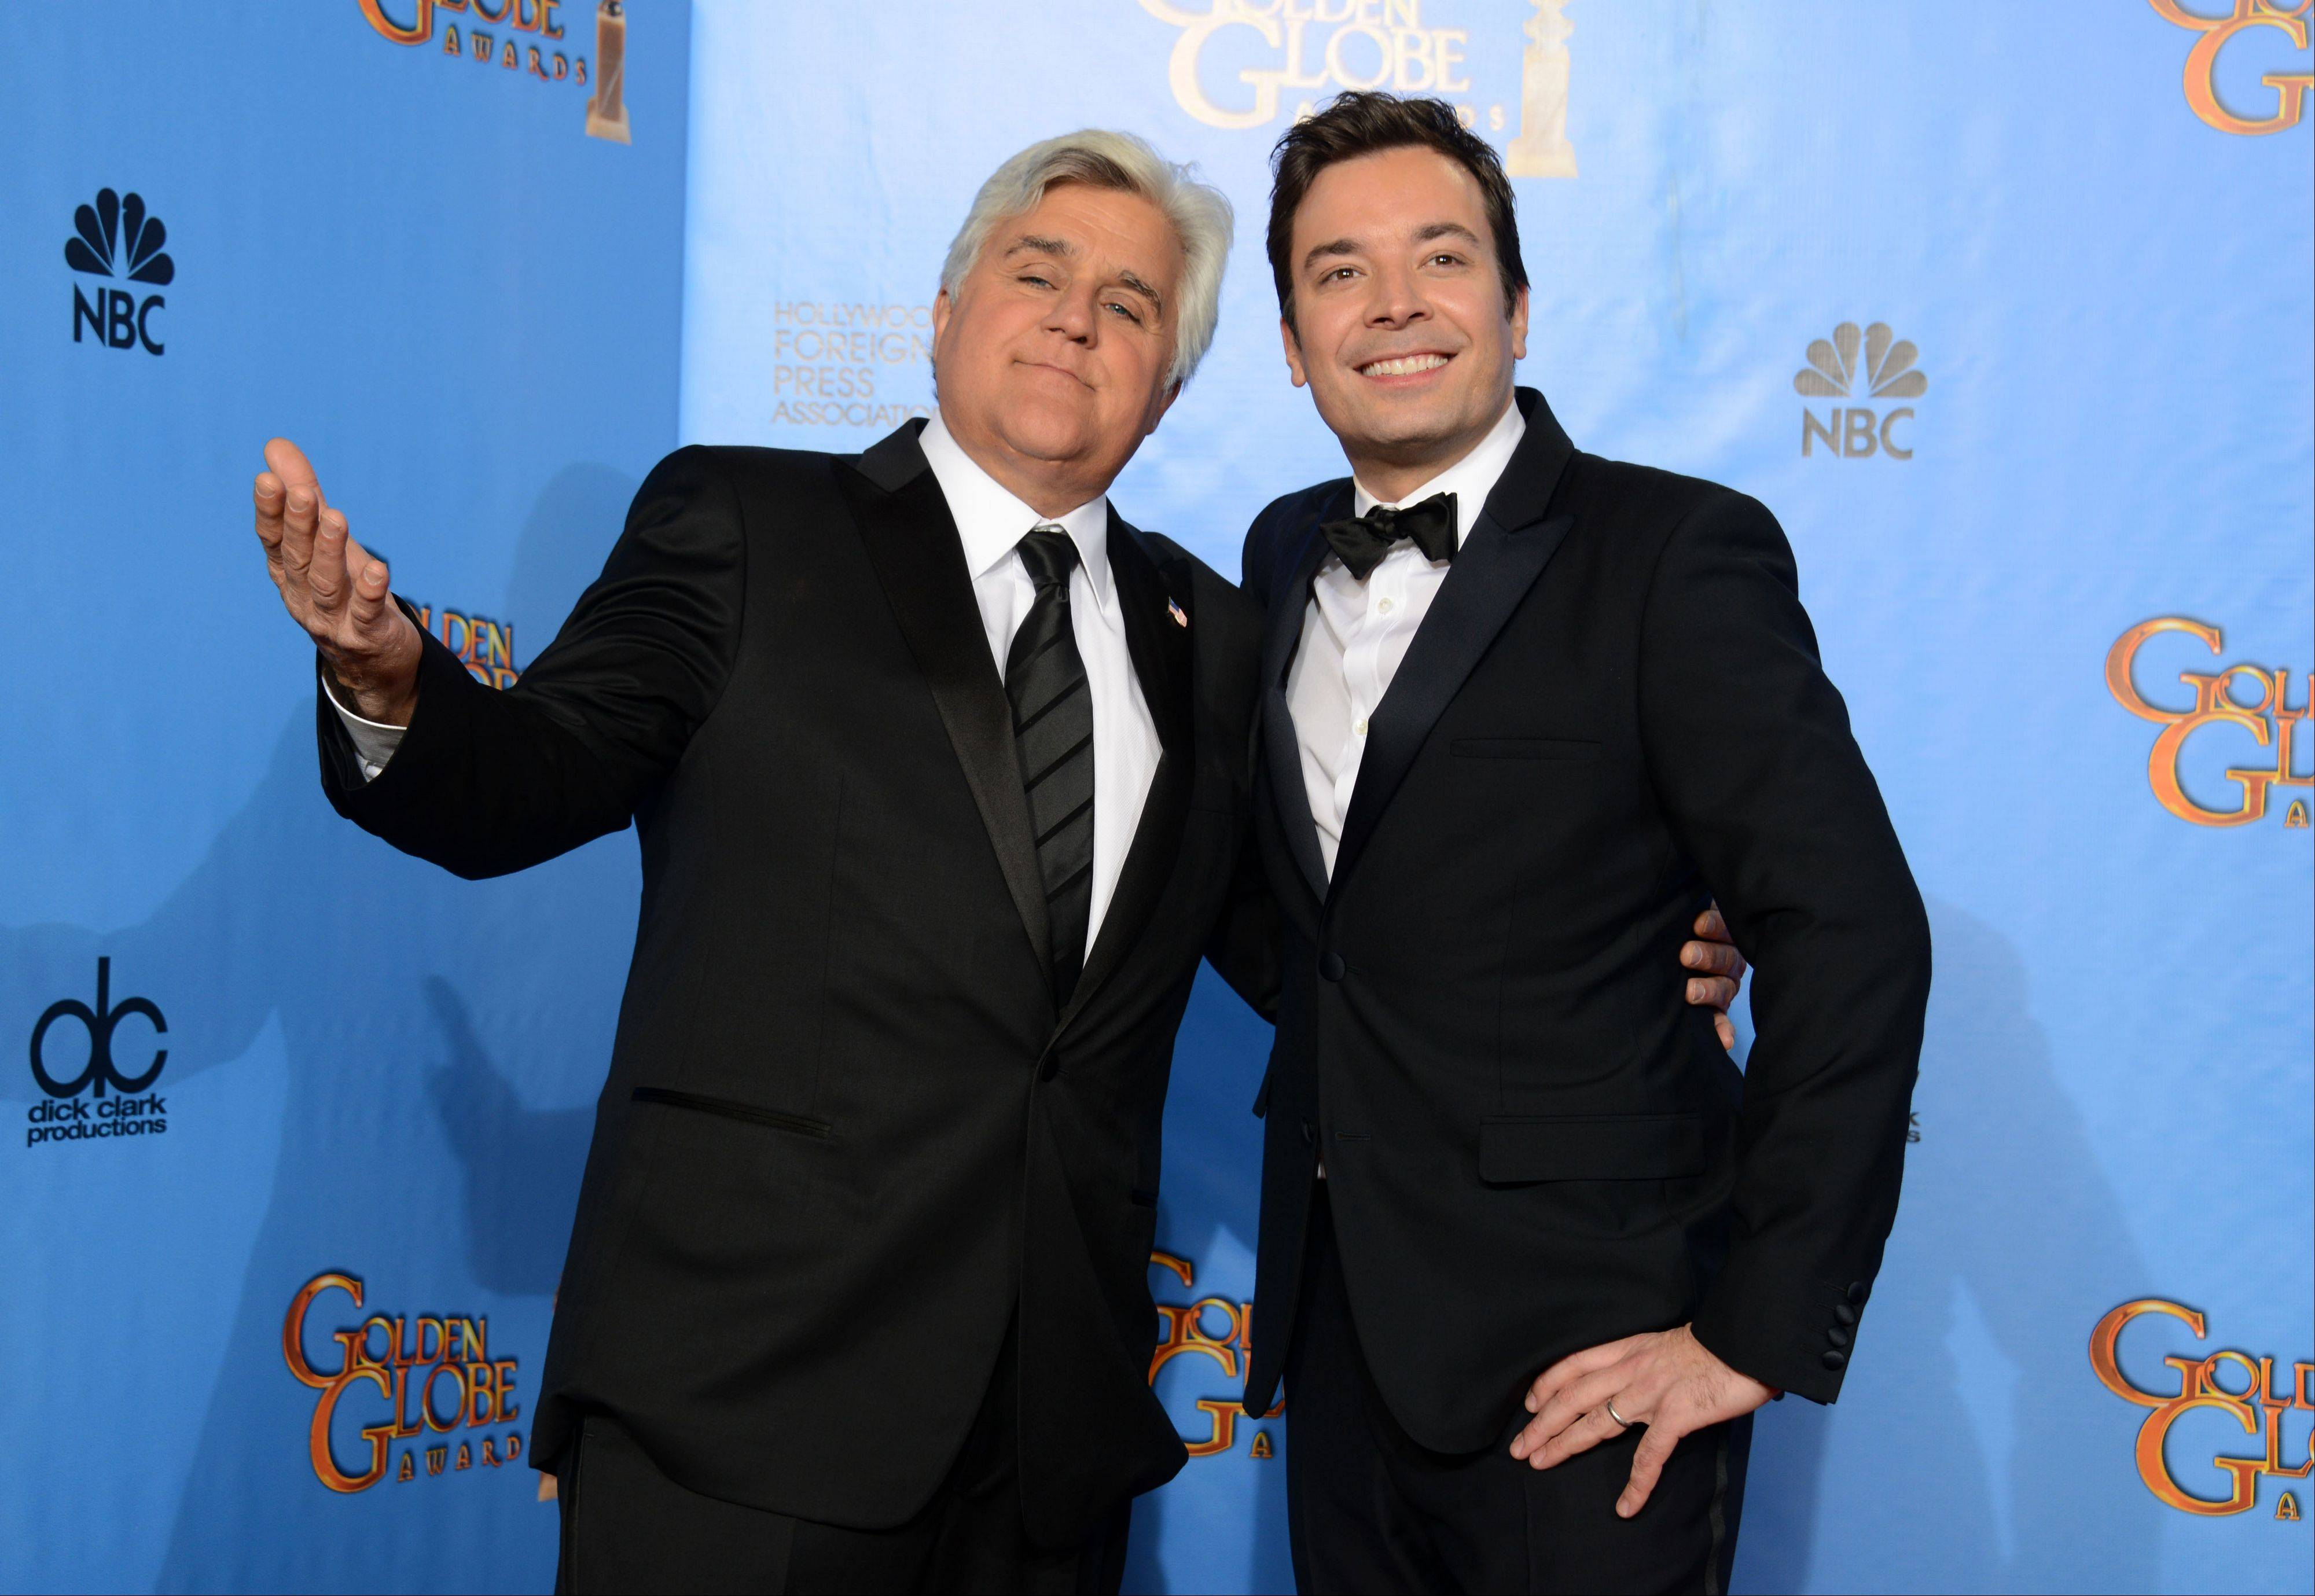 "This Jan. 13 file photo shows Jay Leno, host of ""The Tonight Show with Jay Leno,"" left, and Jimmy Fallon, host of ""Late Night with Jimmy Fallon"" backstage at the 70th Annual Golden Globe Awards in Beverly Hills, Calif. As Jay Leno lobs potshots at ratings-challenged NBC in his ""Tonight Show"" monologues, speculation is swirling the network is taking steps to replace the host with Jimmy Fallon next year and move the show from Burbank to New York."